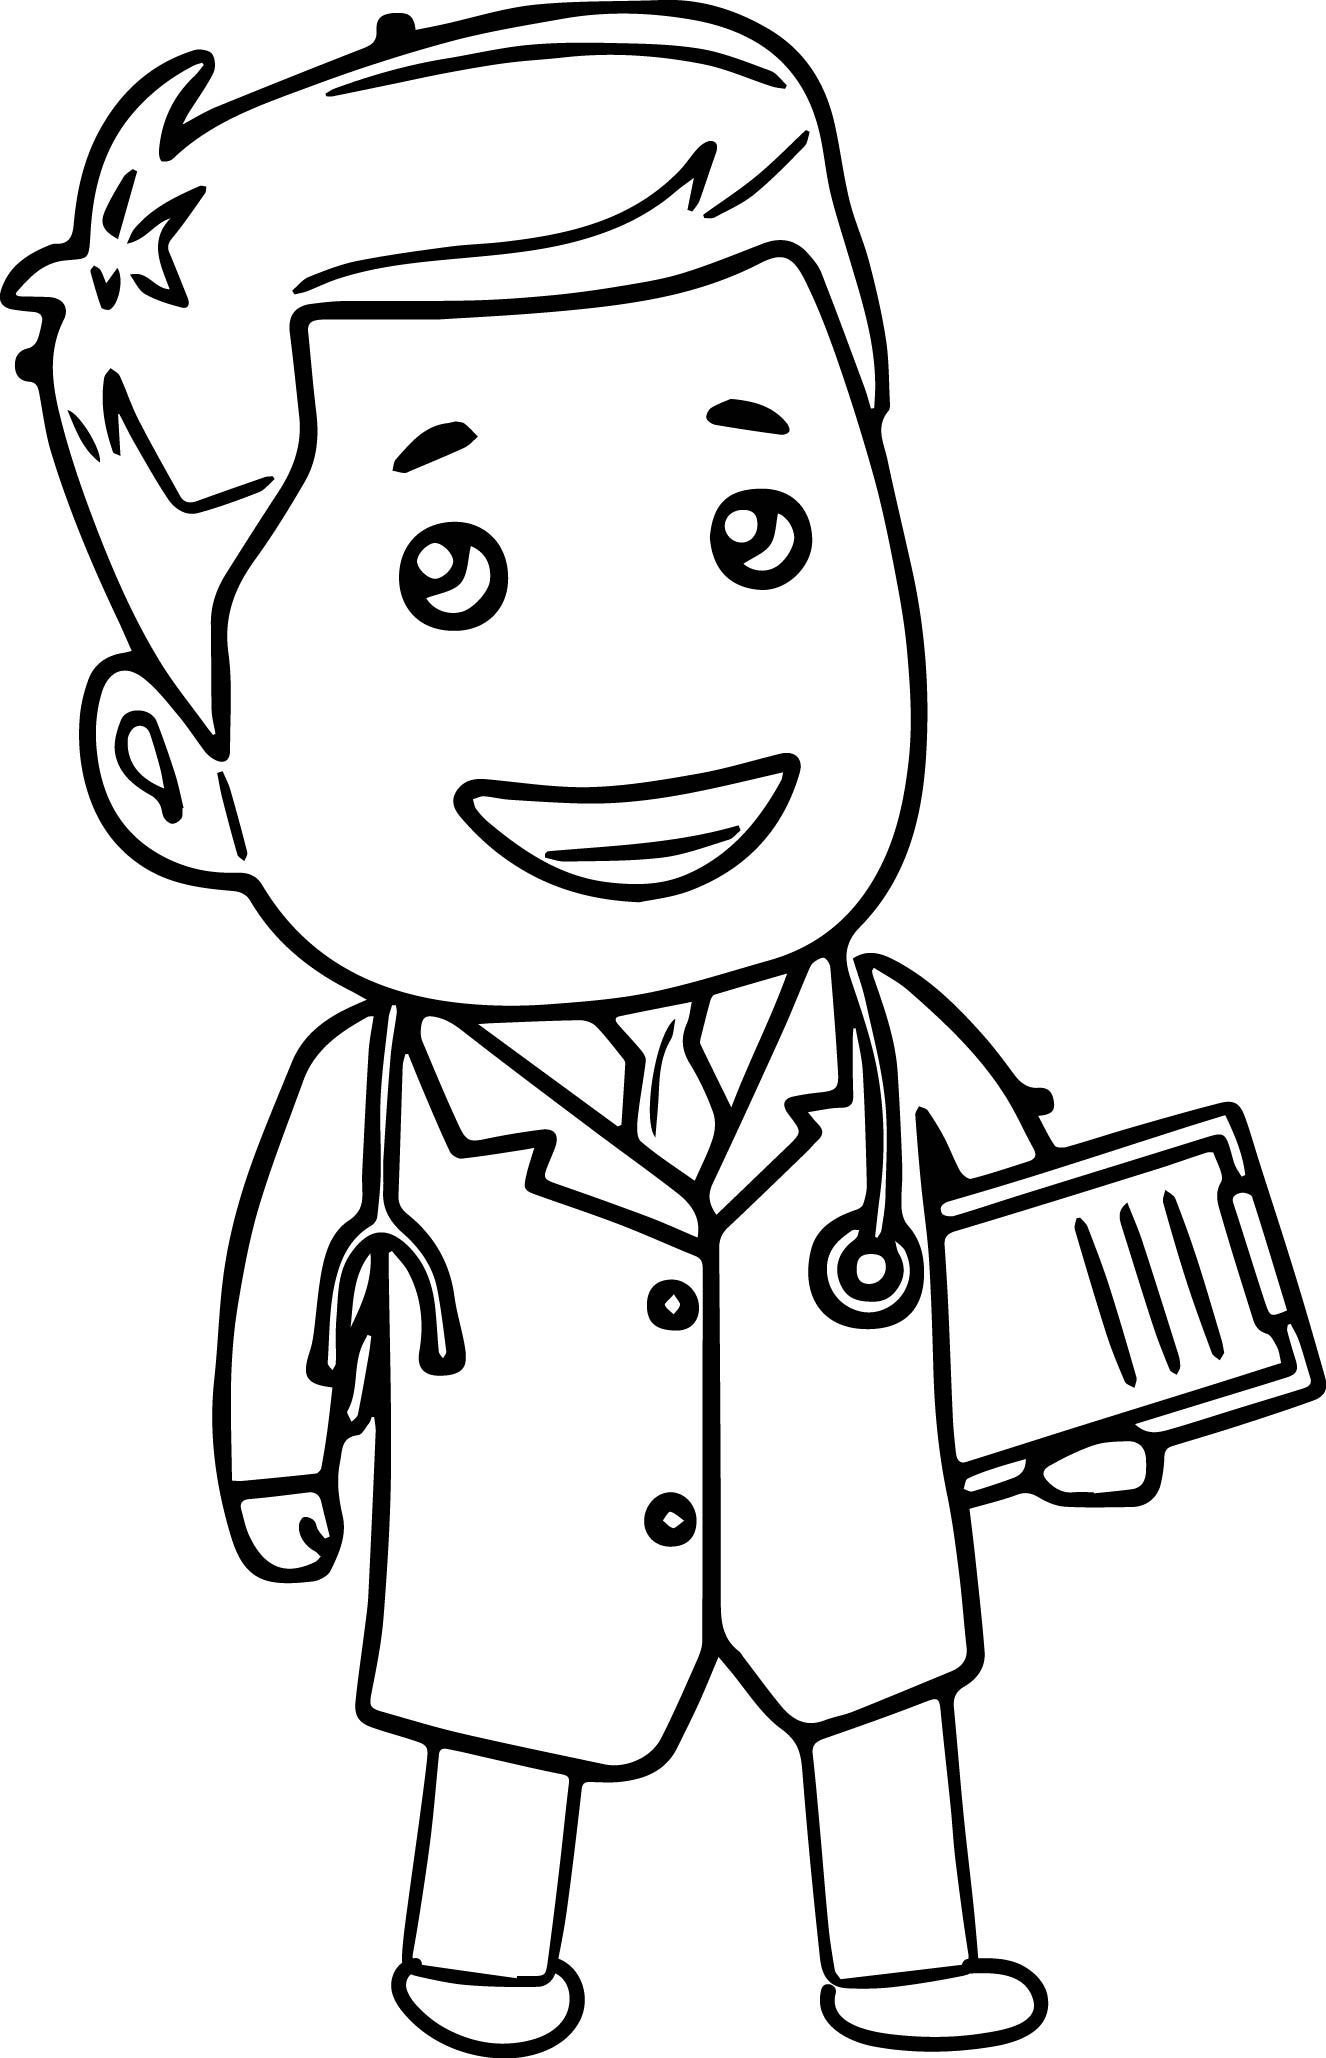 Doctor Tools Clipart Doctor Cartoon Coloring Page Cartoon